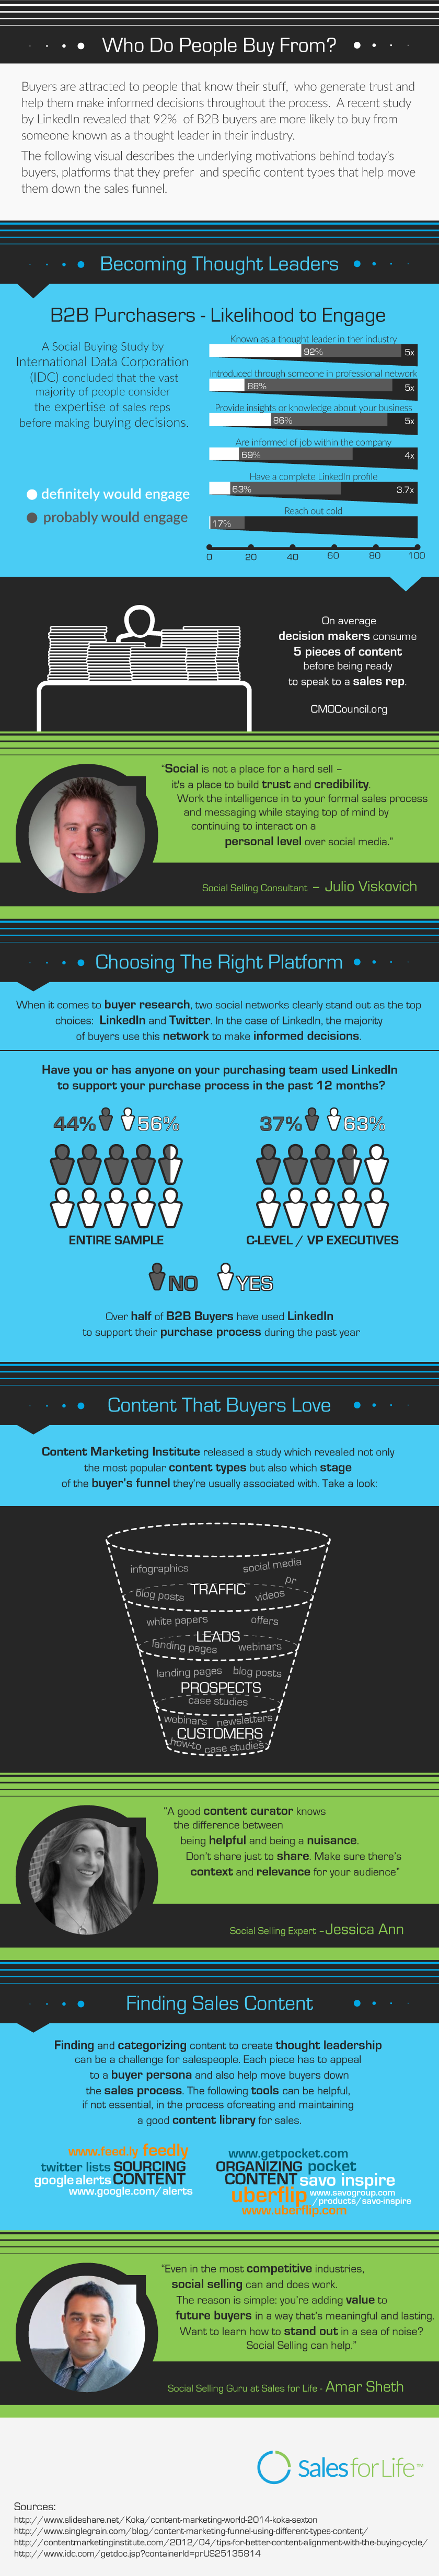 Who Do People Buy From? Social Selling Infographic